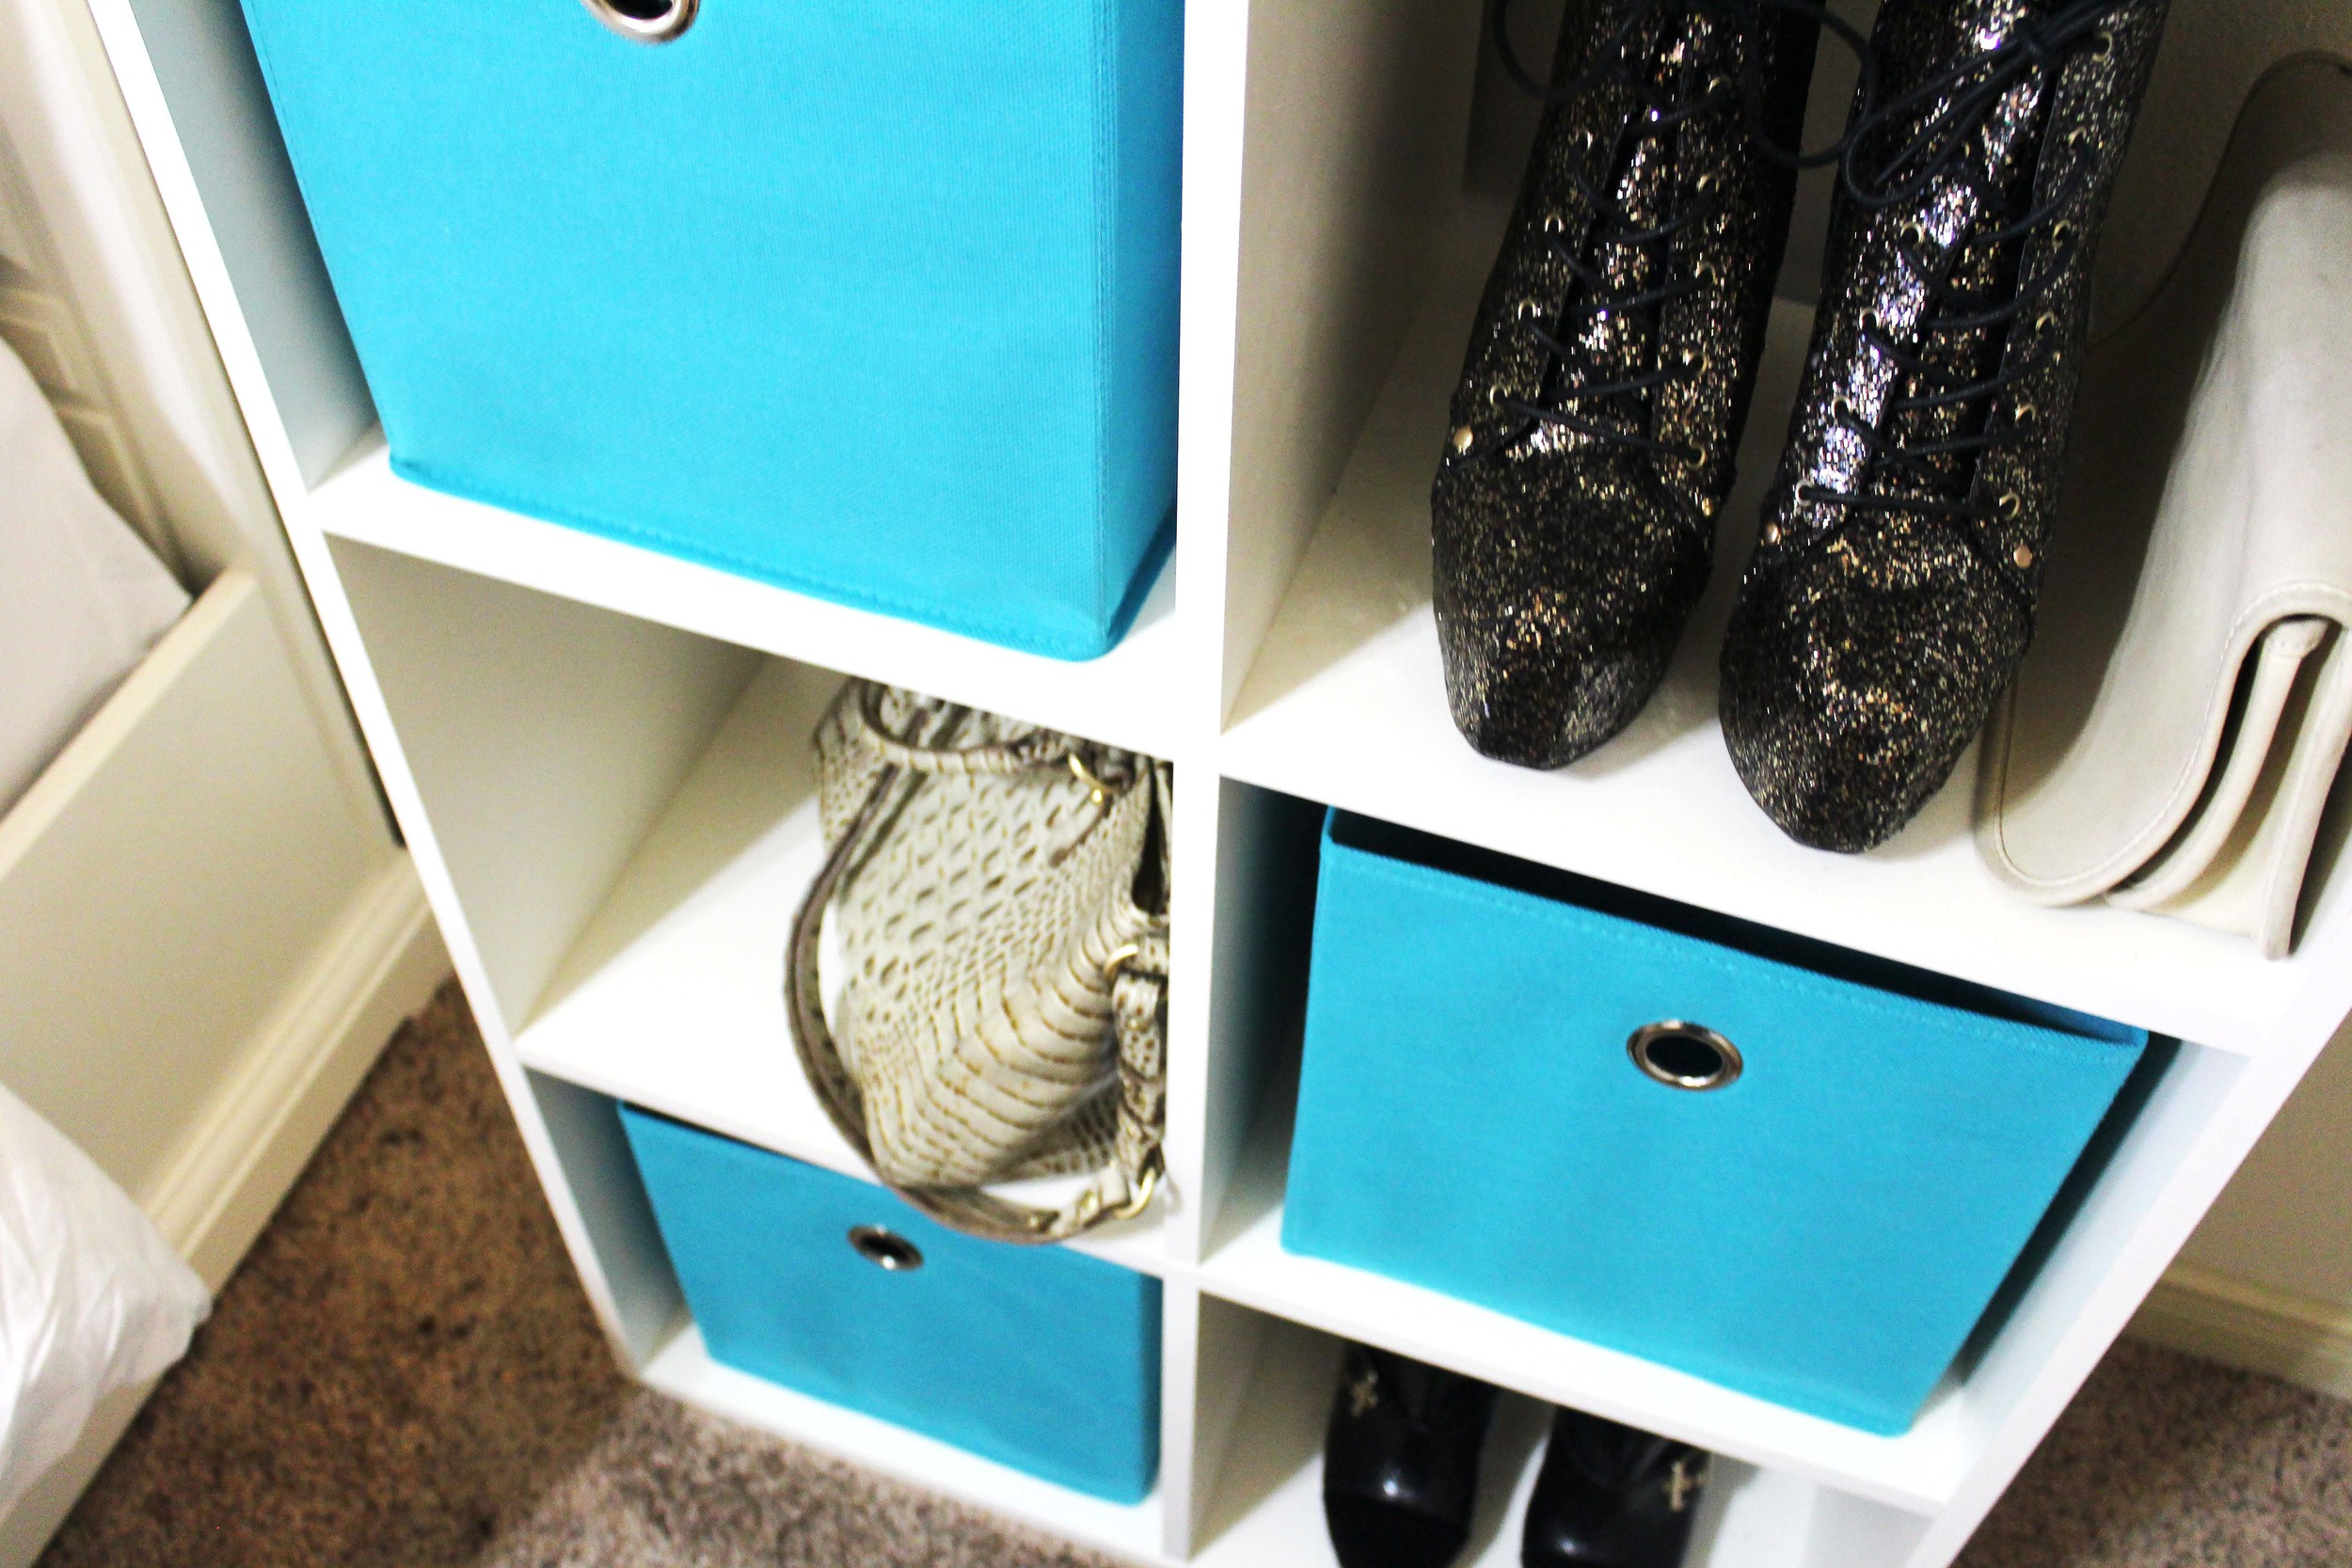 These teal fabric storage bins add a pop of color to my shelf and keep it much more organized. It's a great way to appear tidy if you're really not! |  Room Essentials Fabric Storage Bins  ($6.99 ea.)